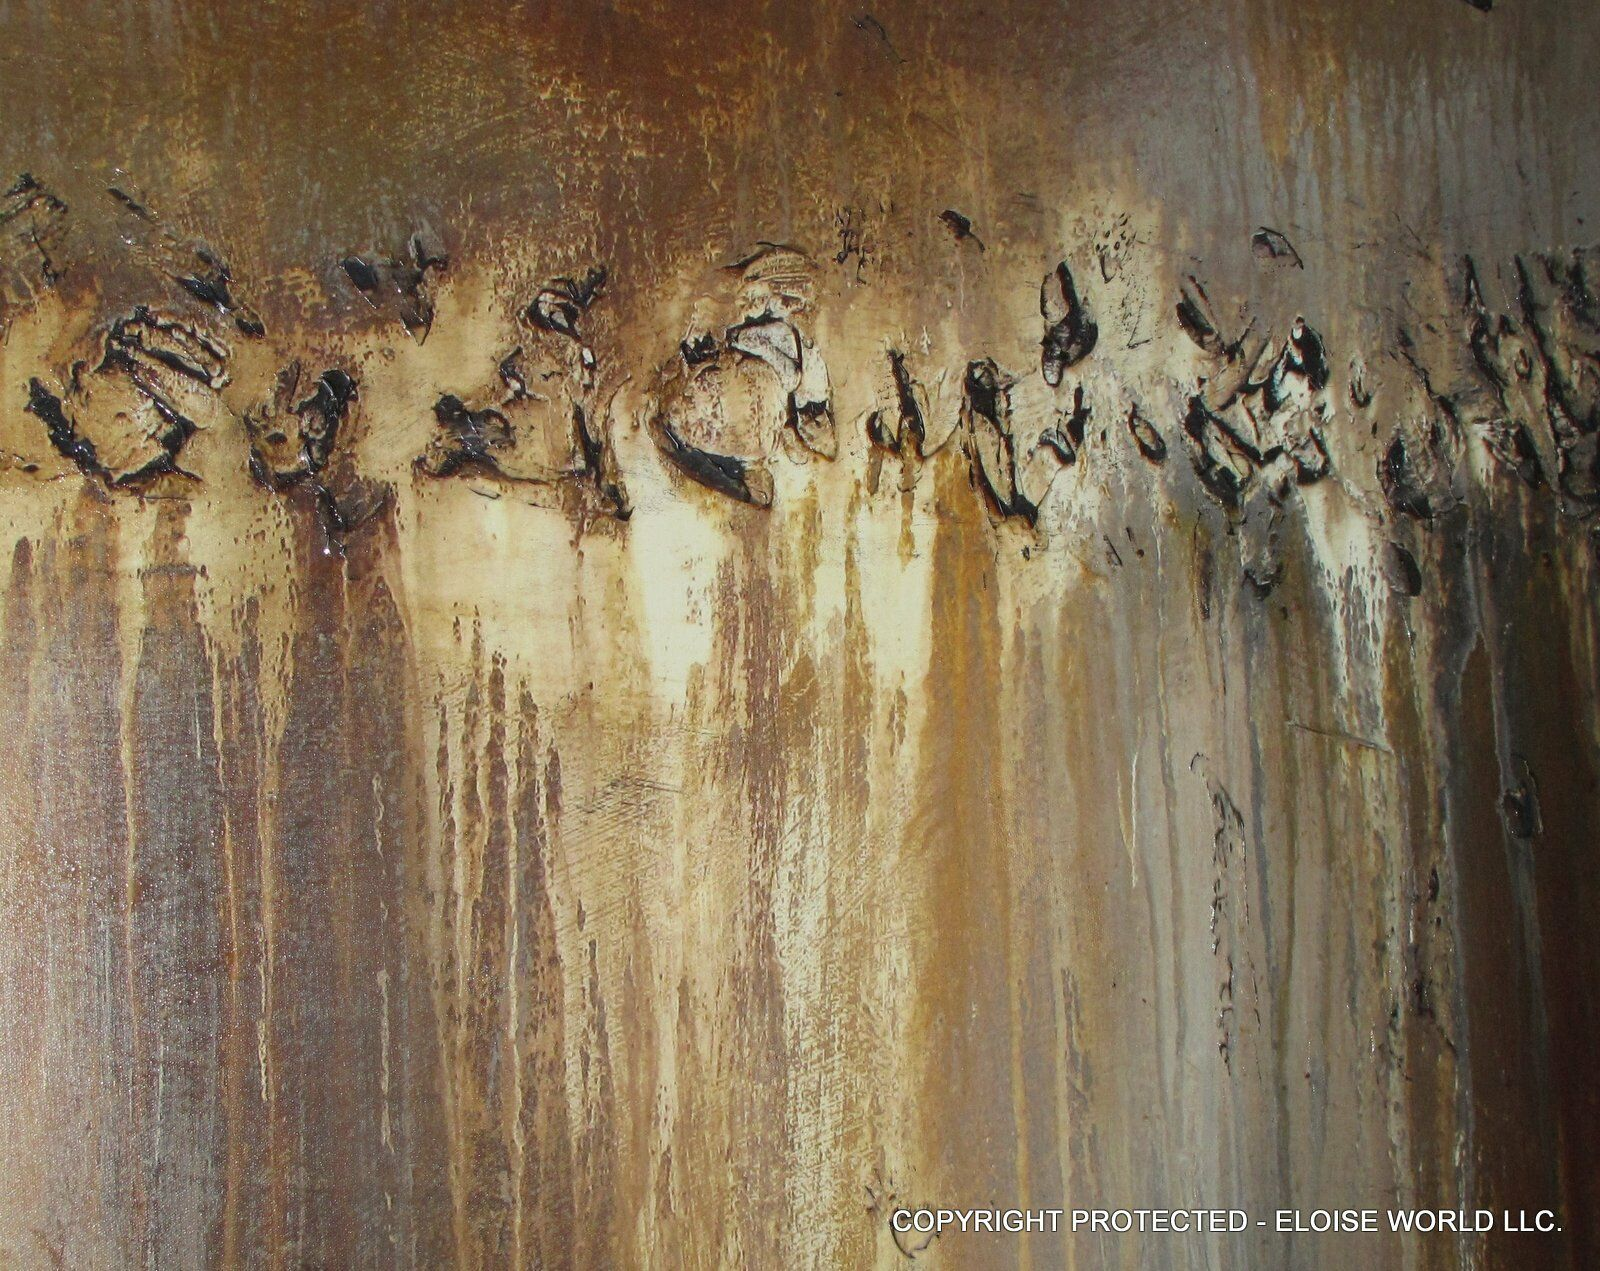 ABSTRACT PAINTING MODERN CANVAS WALL ART Large Framed Signed USA ELOISExxx - $199.00